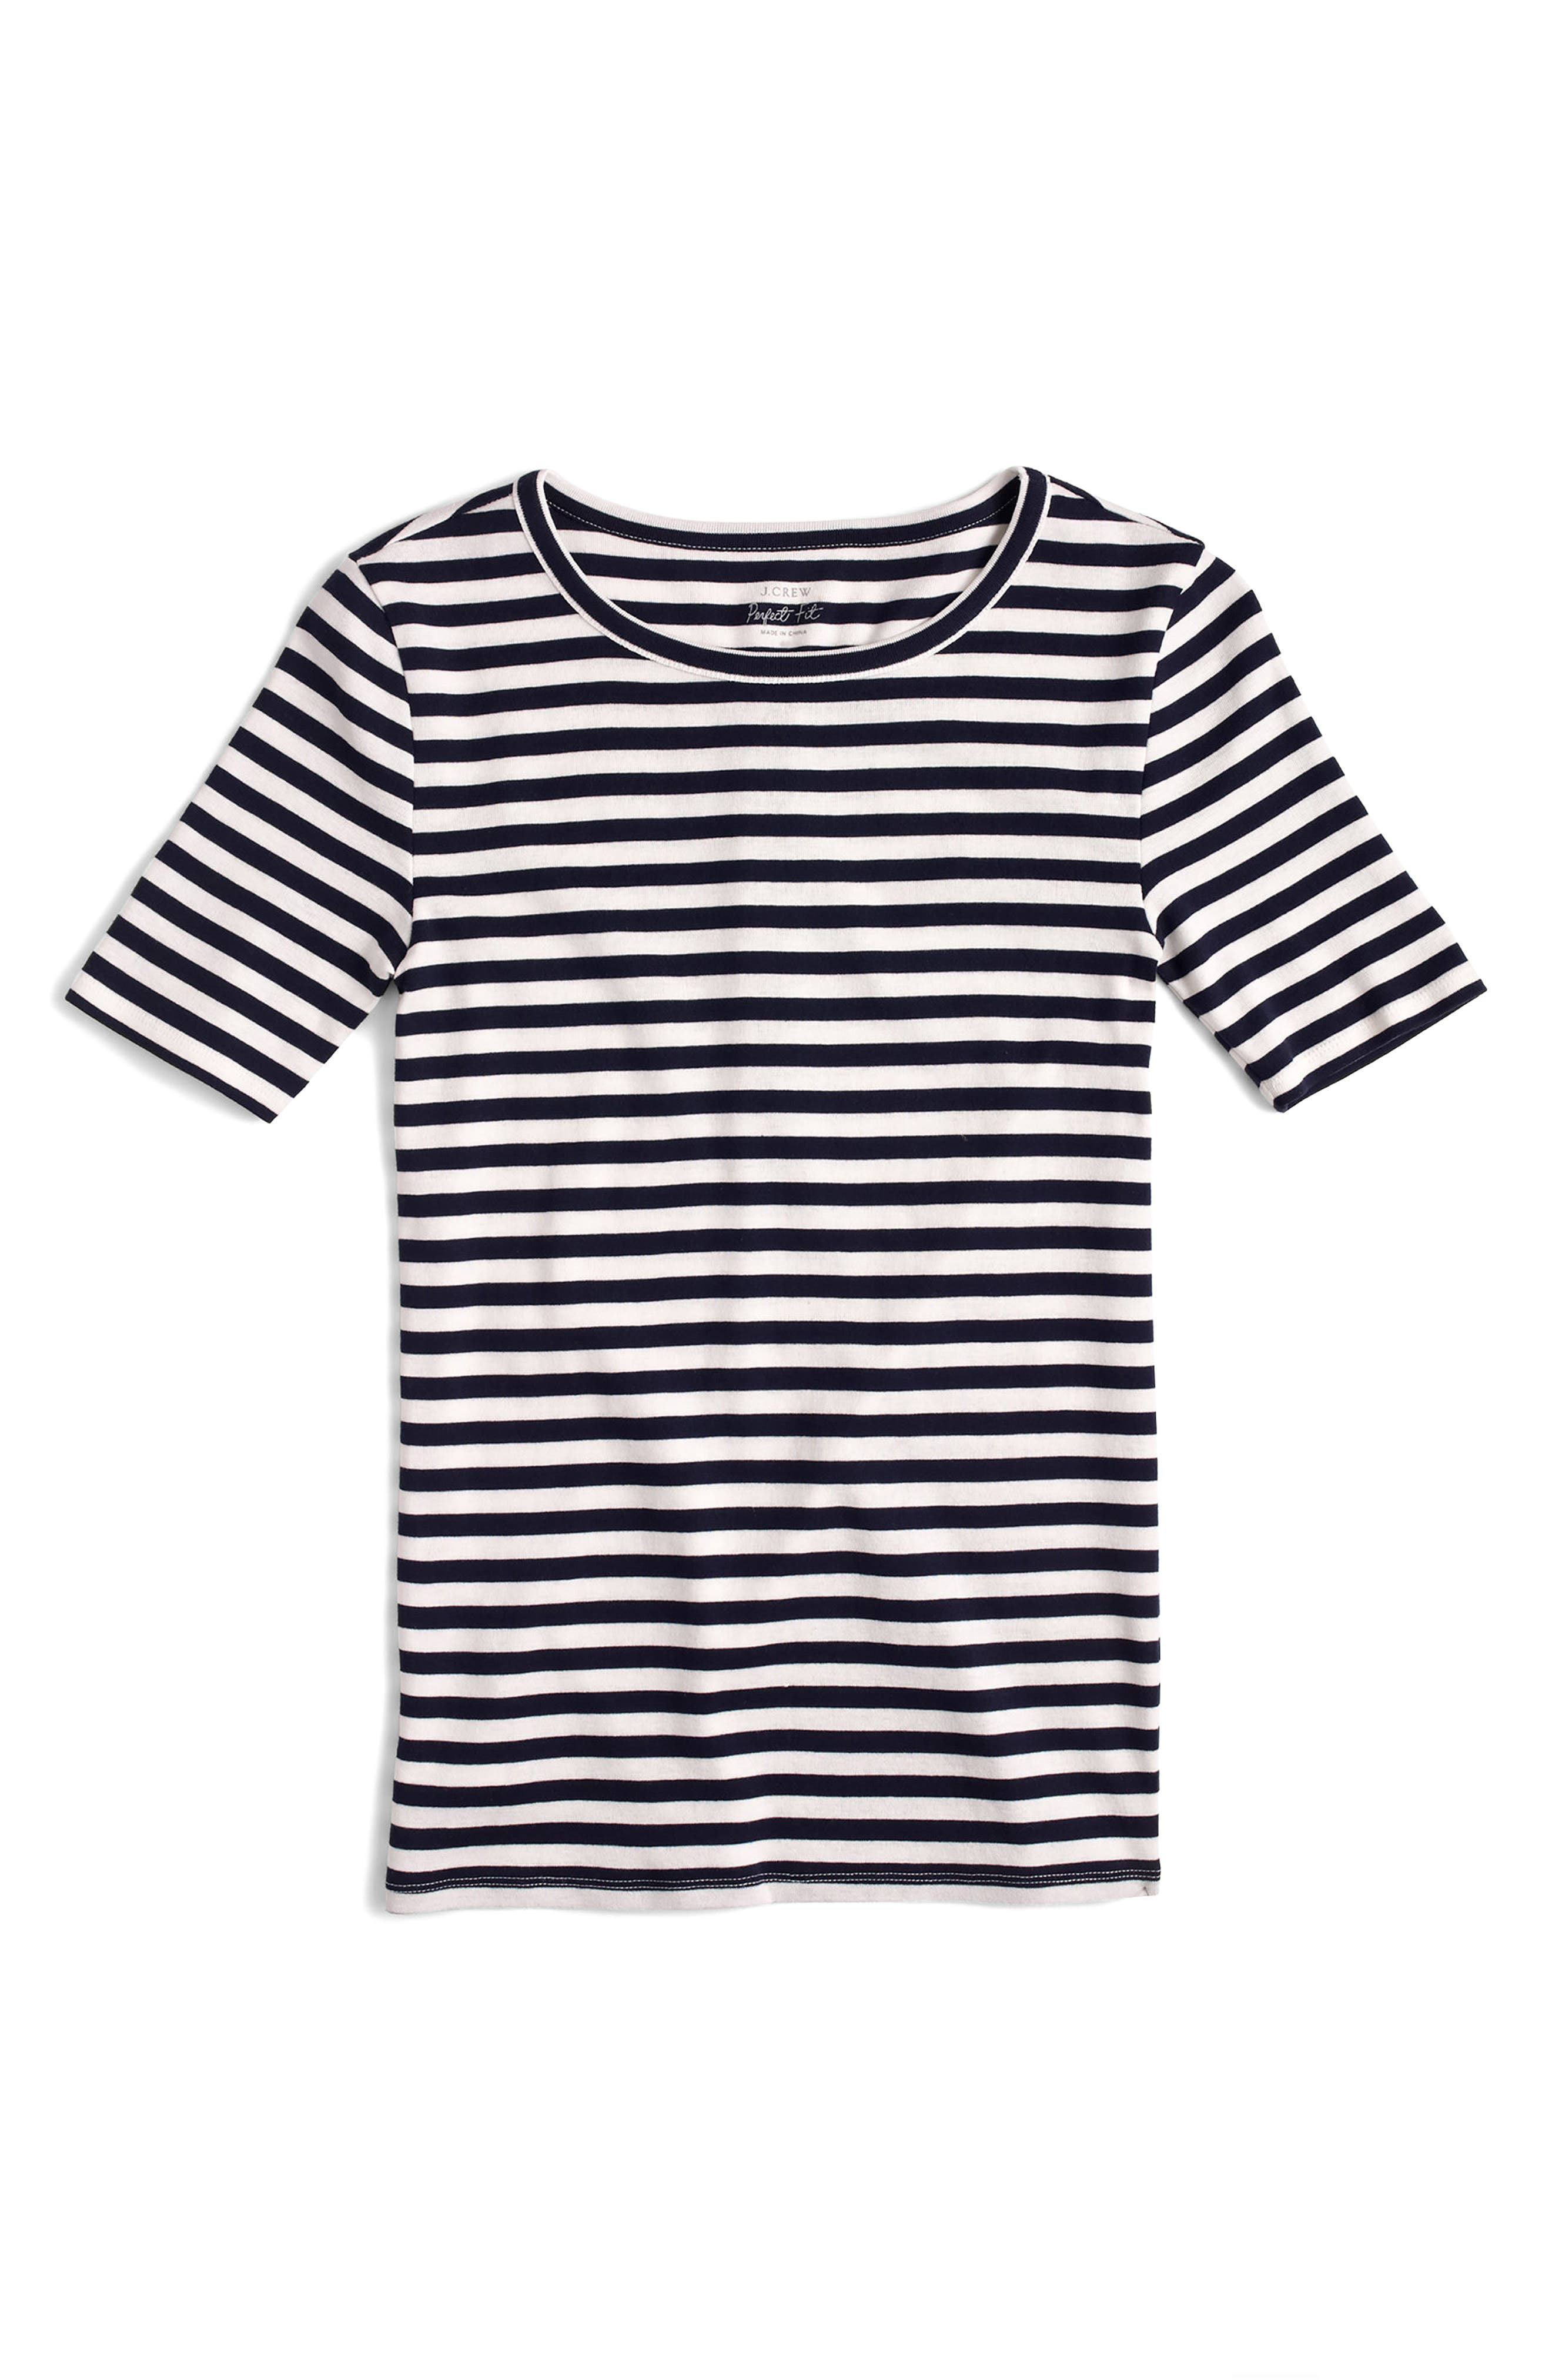 Main Image - J.Crew New Perfect Fit T-Shirt